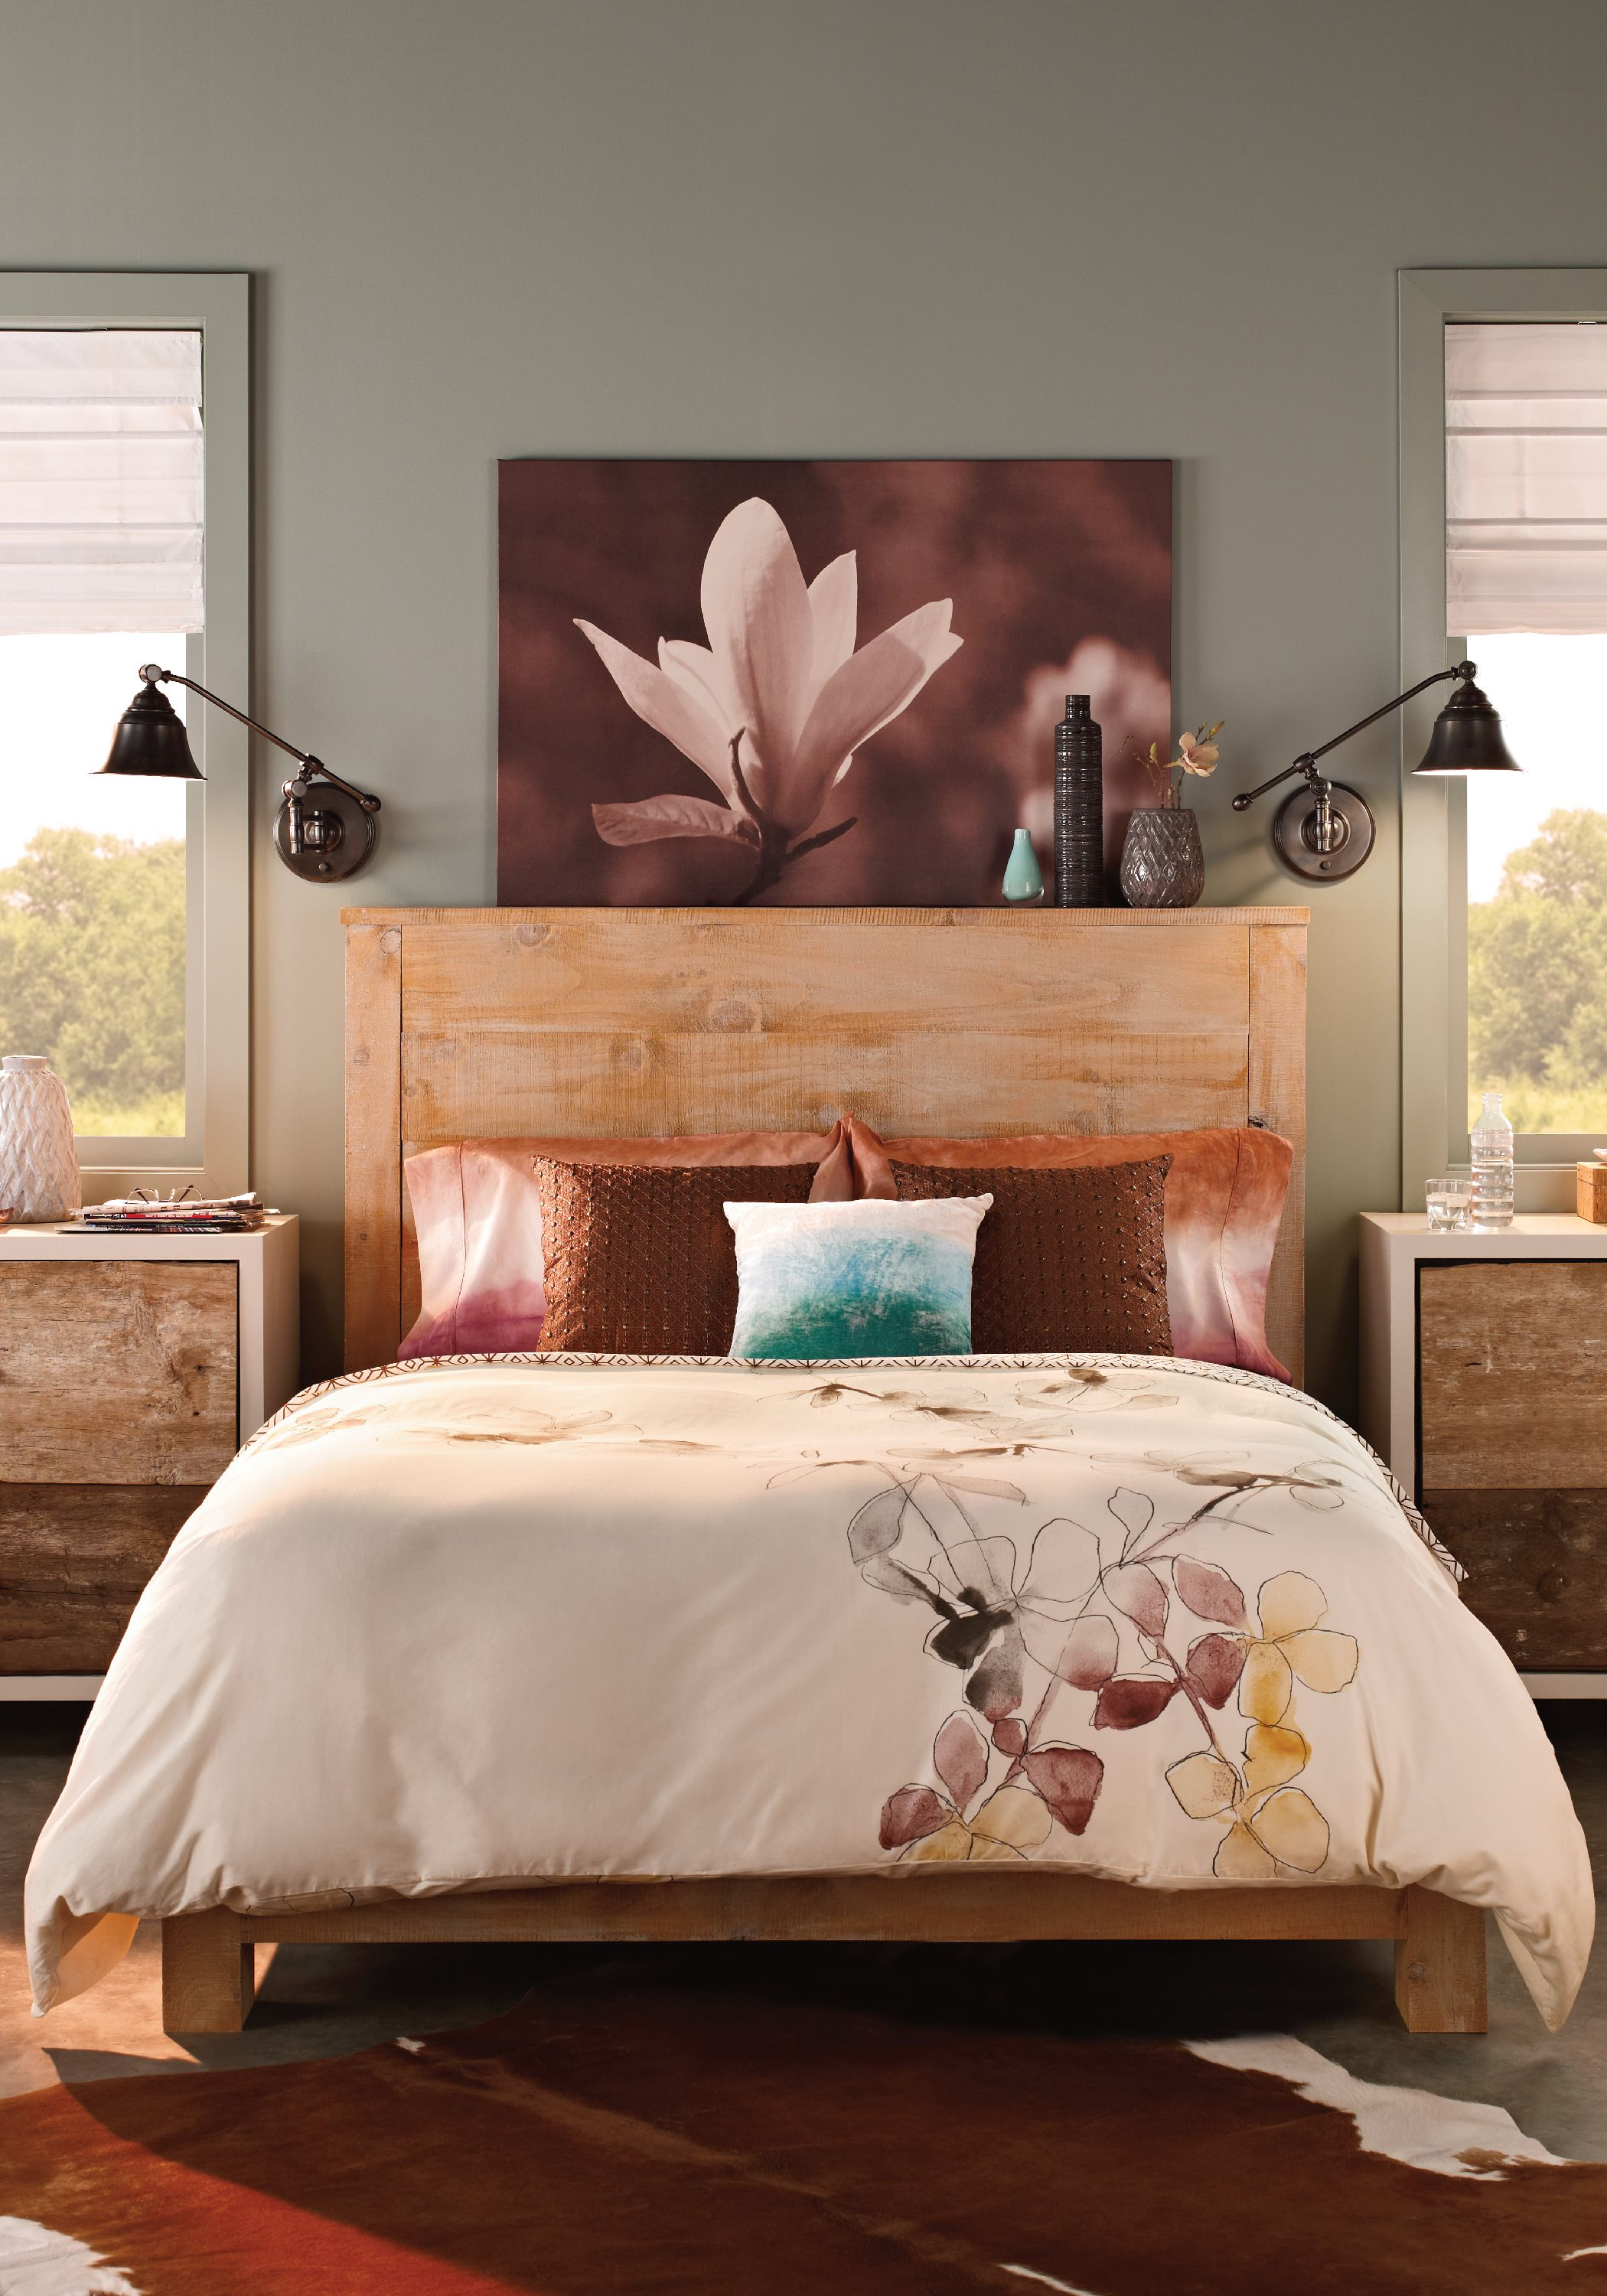 Behr Bedroom Colors Give Your Bedroom A Makeover With Behr Paint In Artful Aqua To